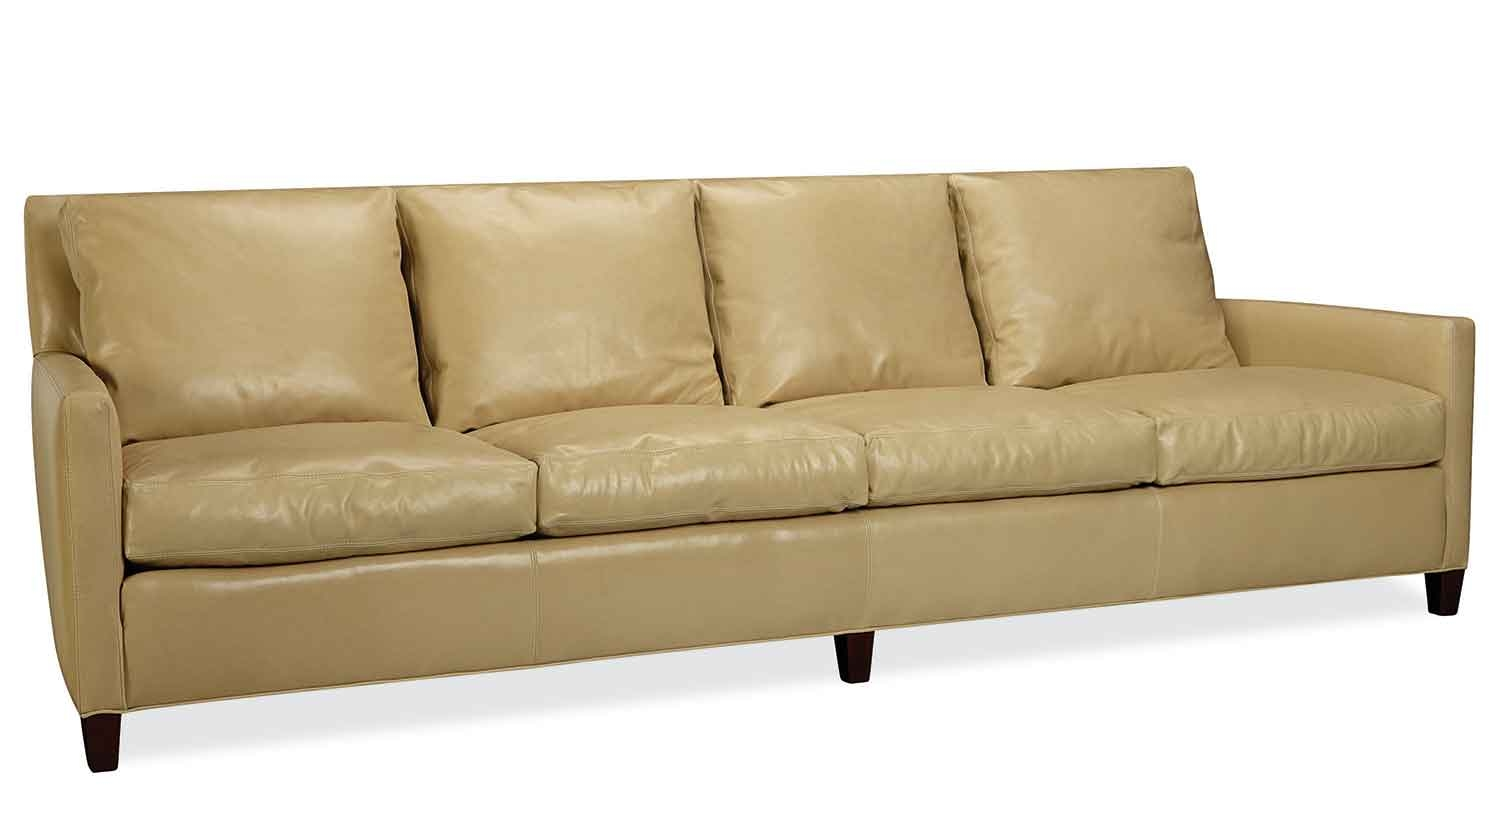 Four Seater Sofa Thesofa Intended For Four Seater Sofas (Image 8 of 15)